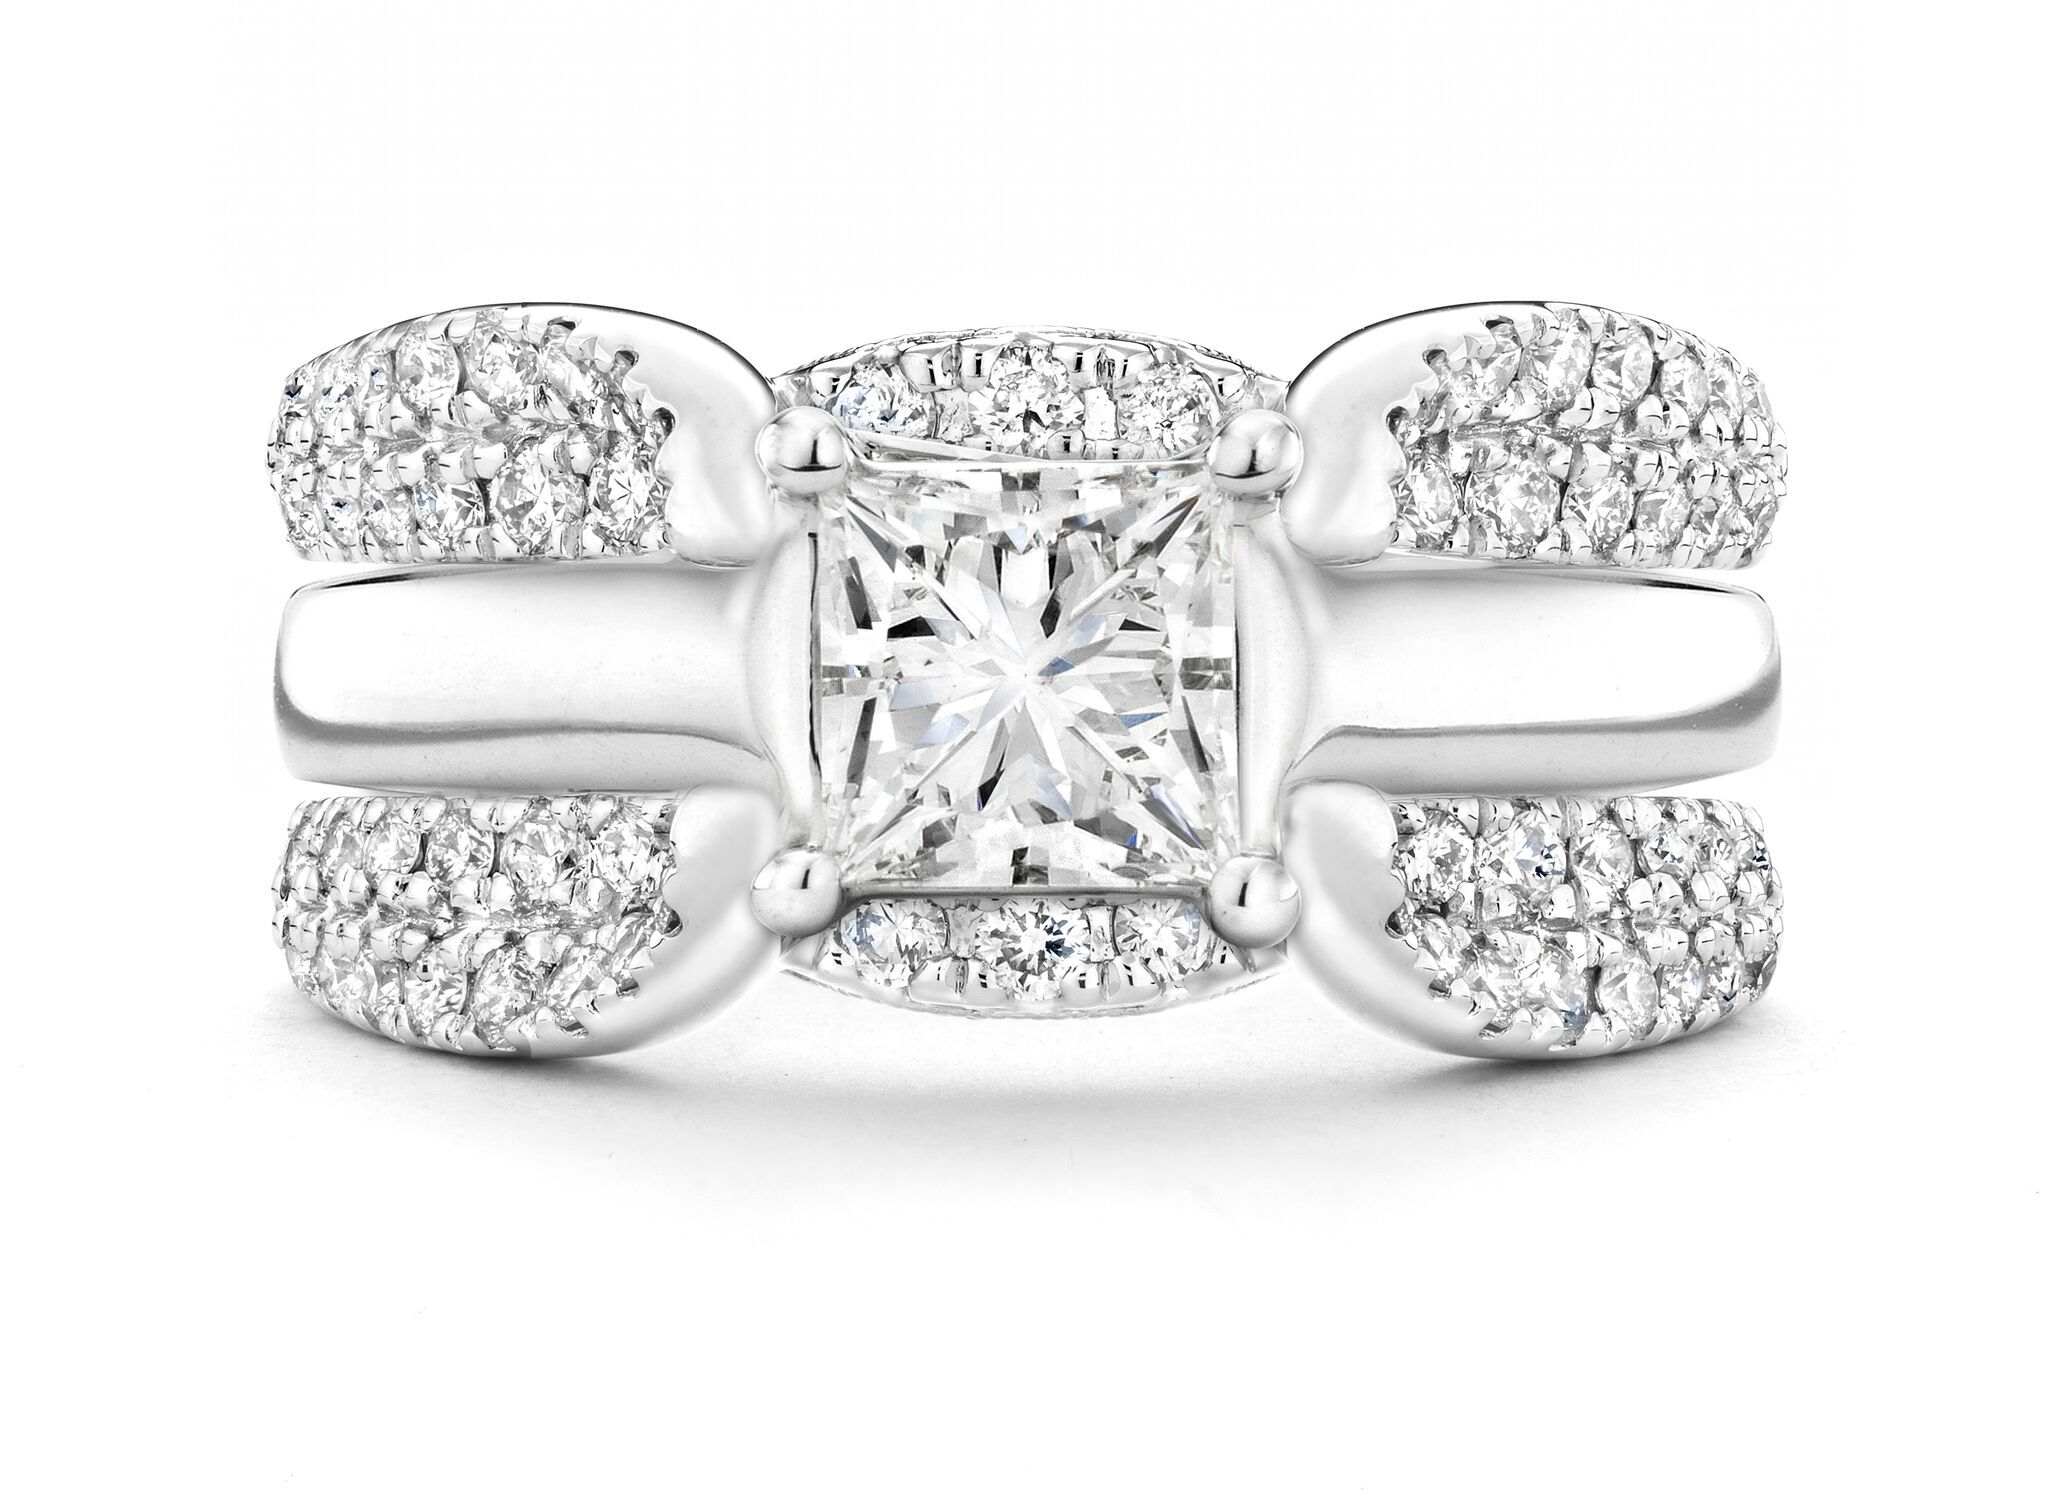 image lane off it bridal neil topic here engagement tolkowsky show rings wedding may